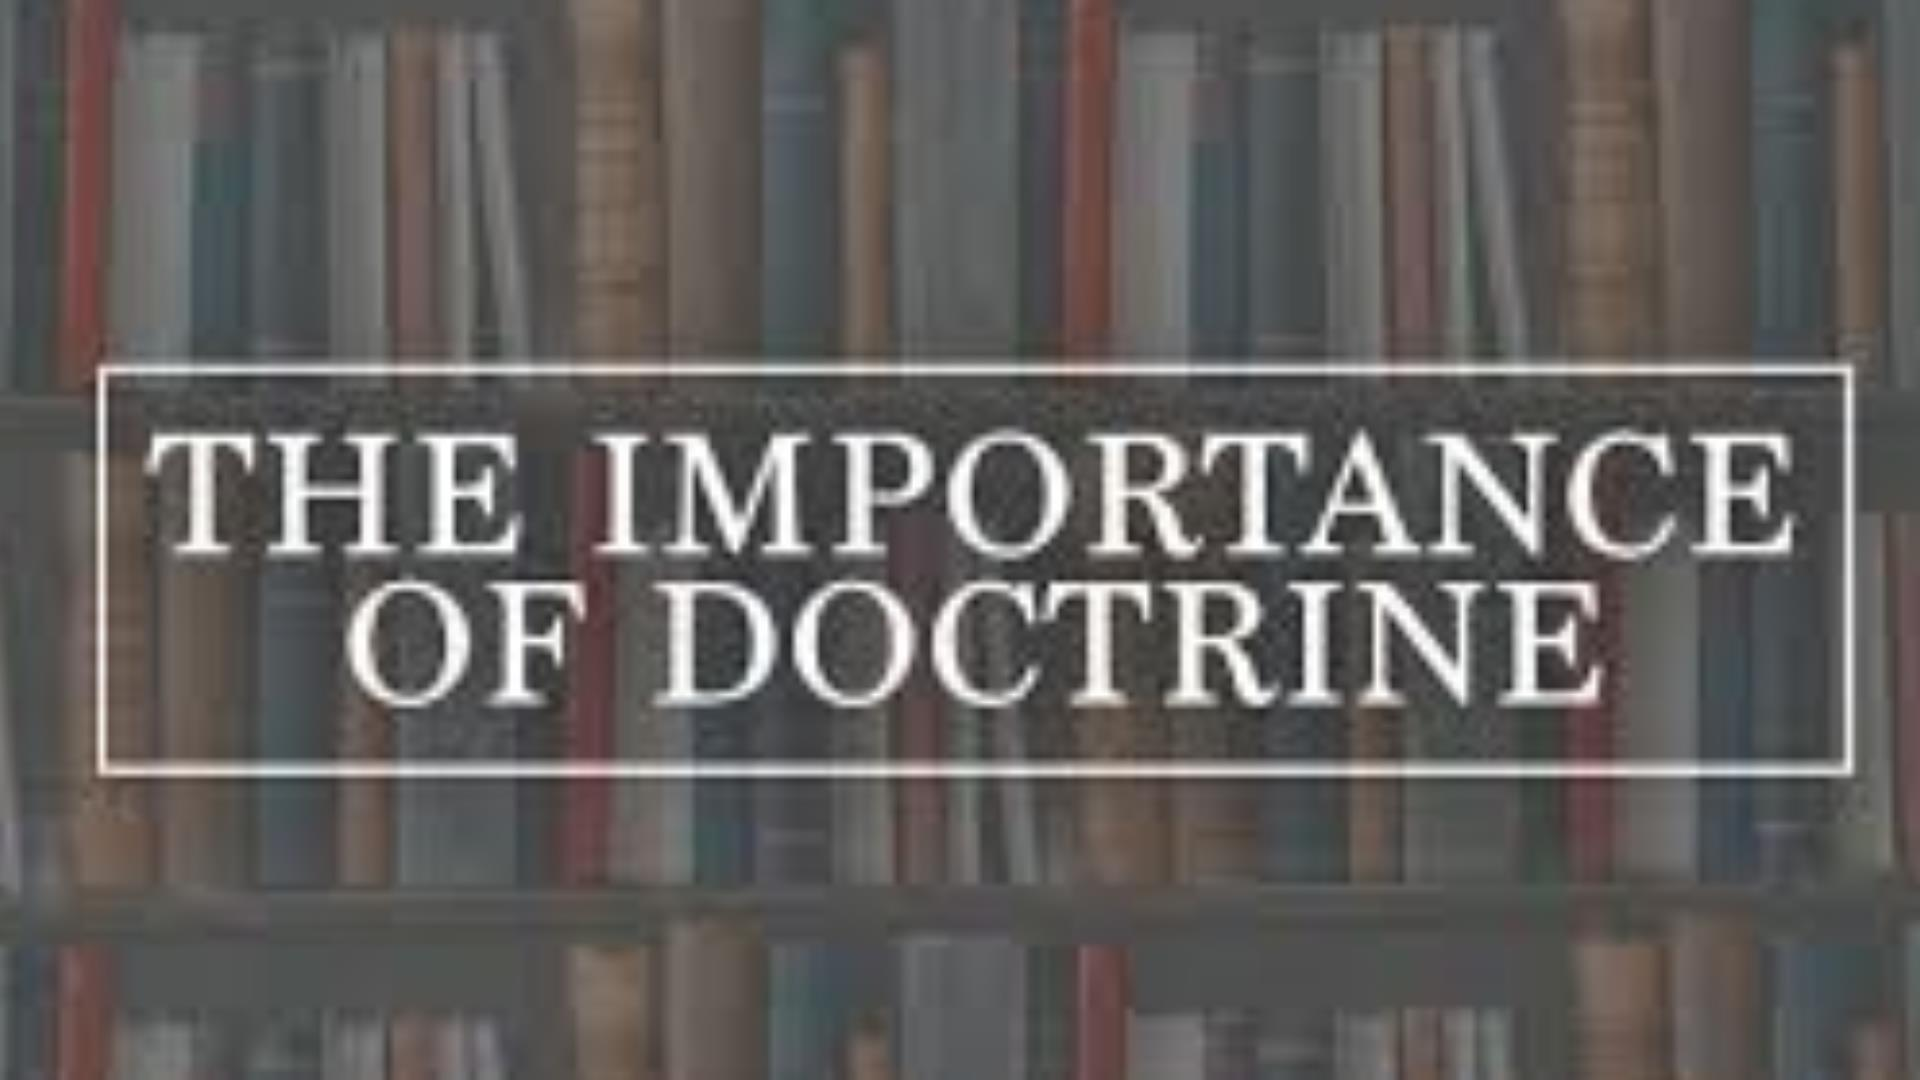 IMPORTANCE OF DOCTRINE